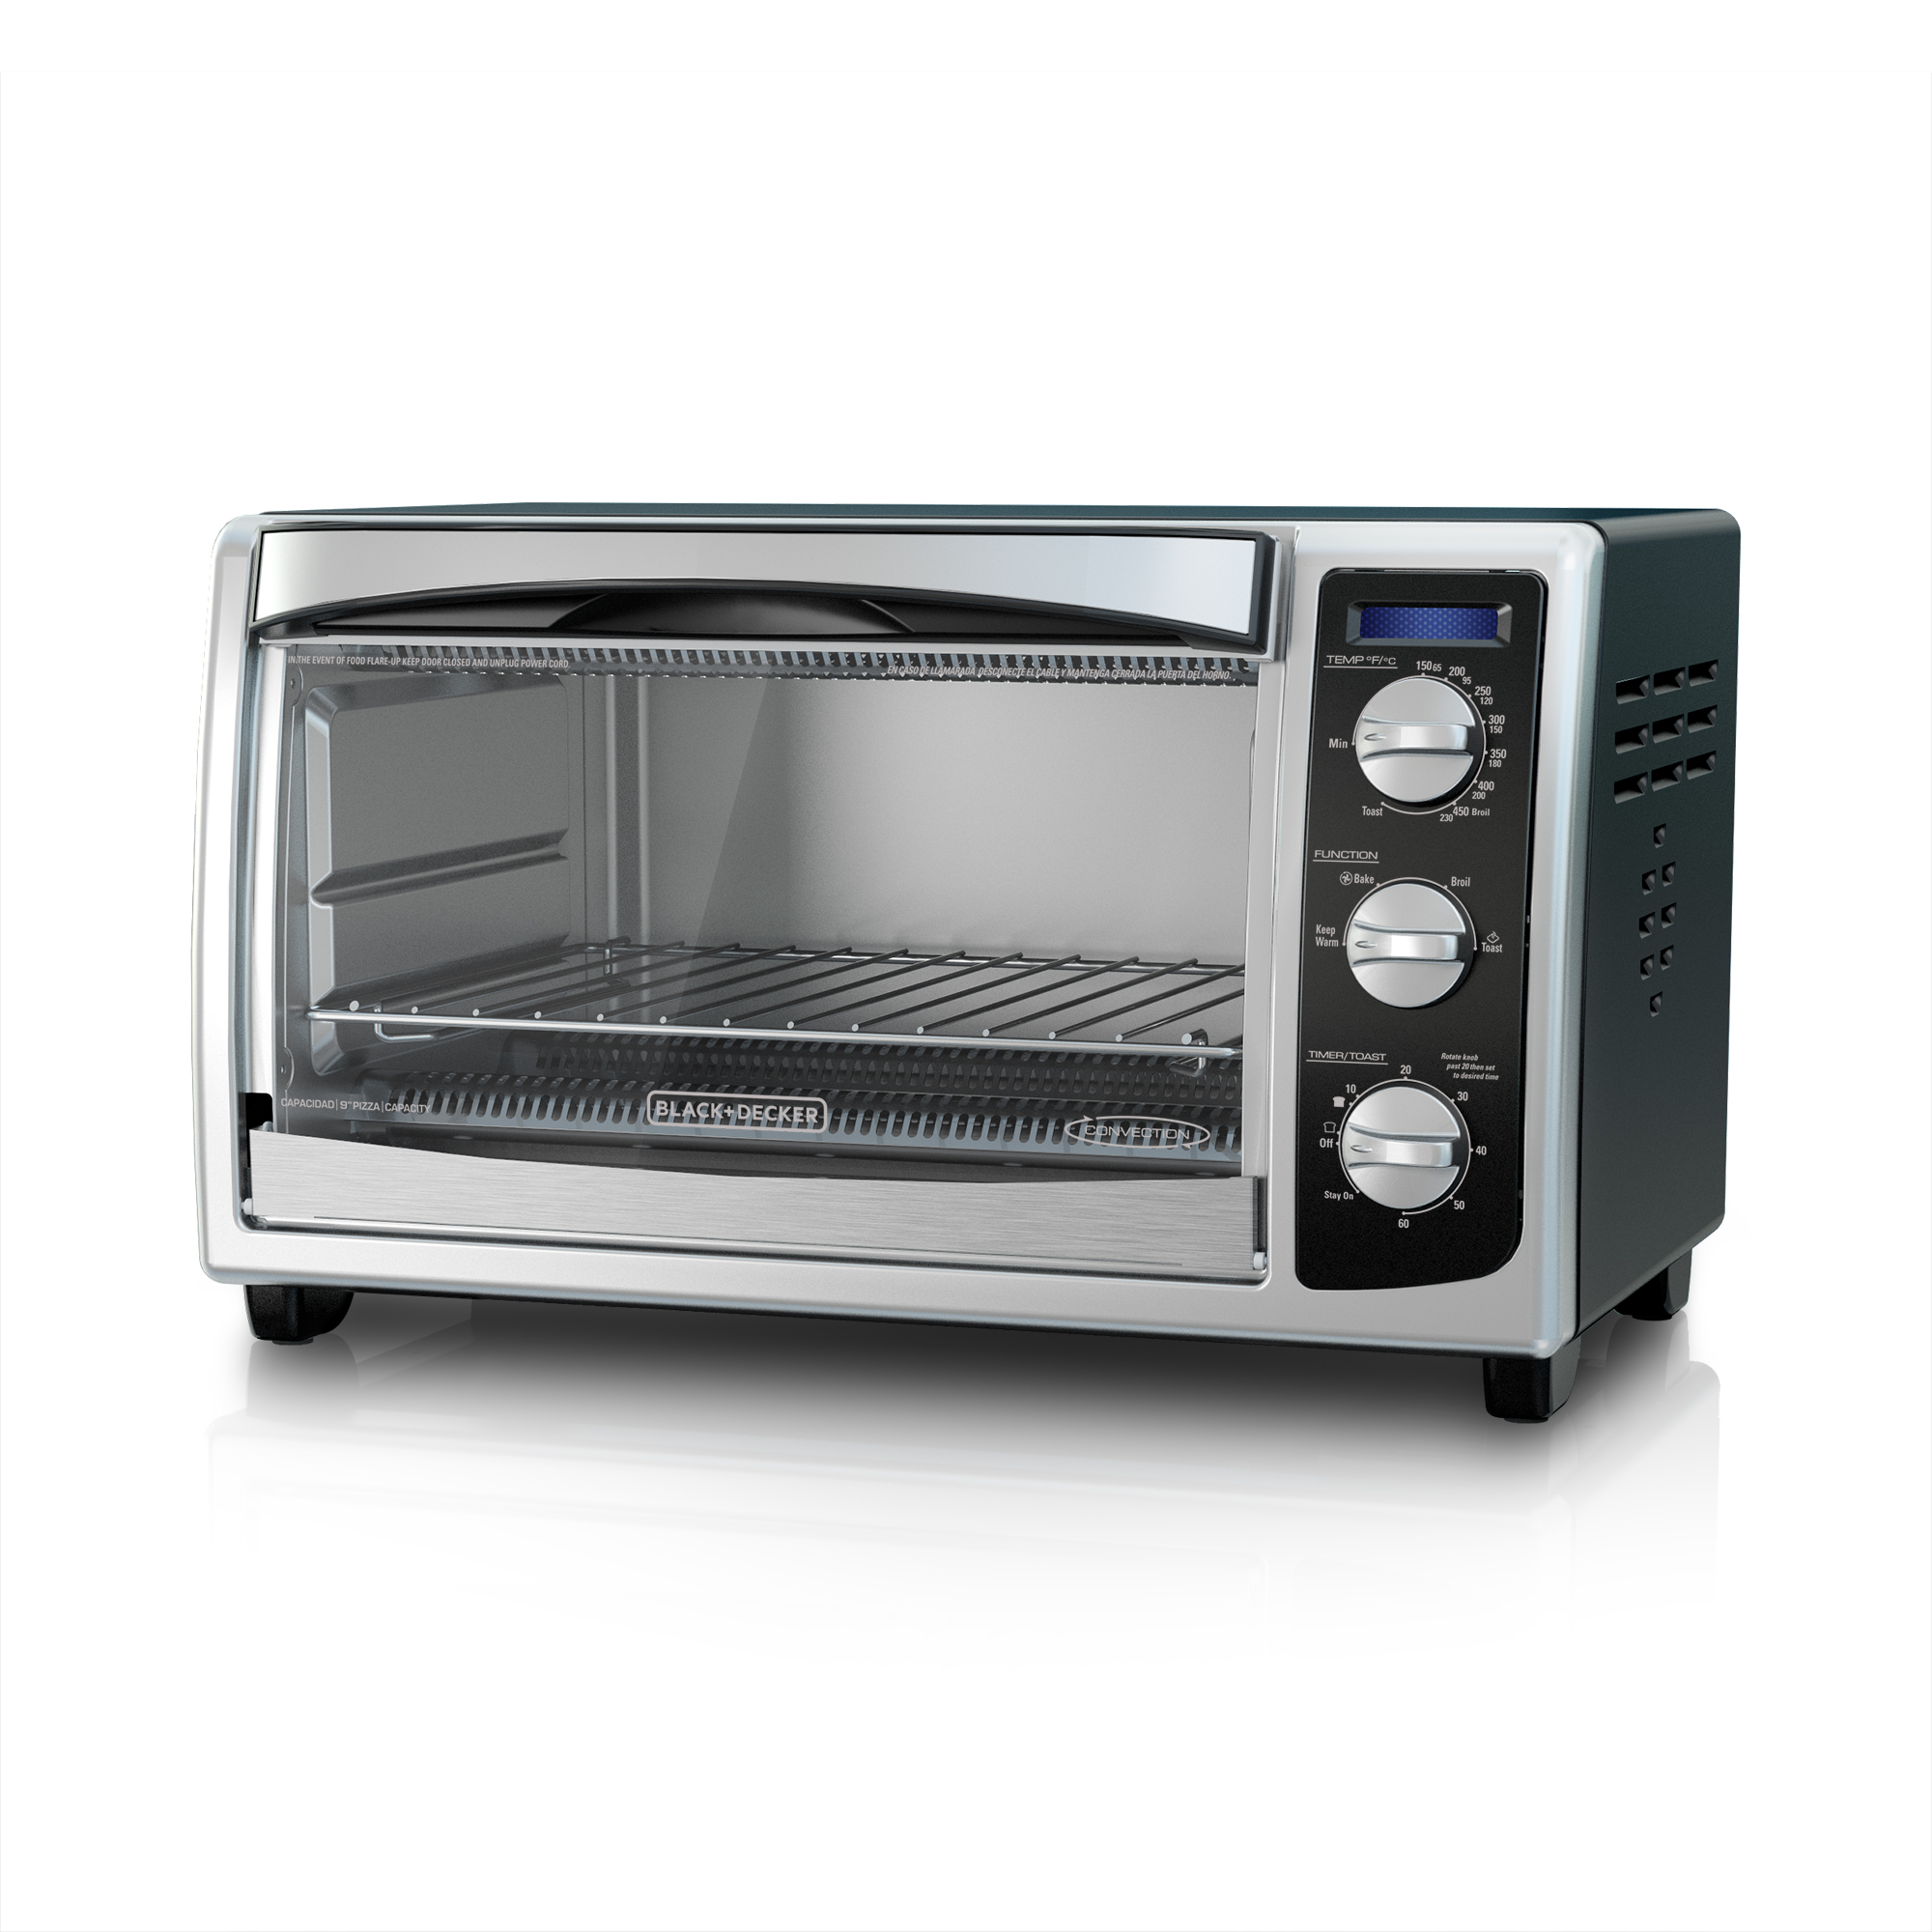 Black & Decker Convection Toaster Oven, 1 Each